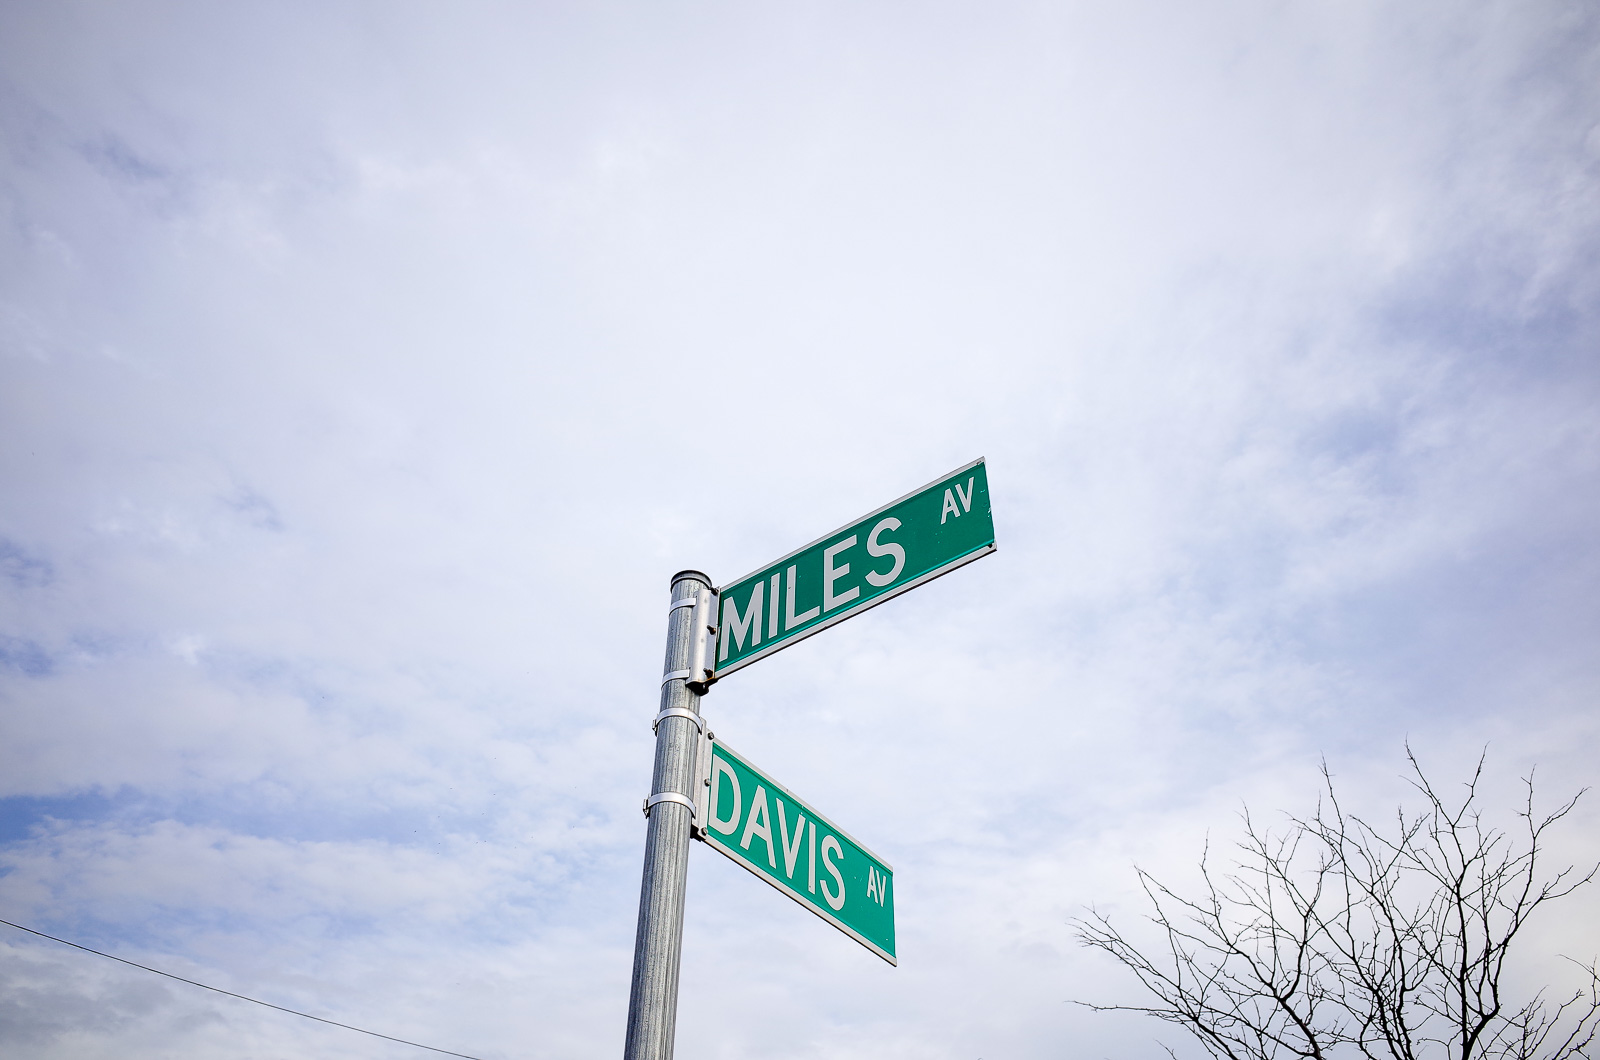 Miles and Davis Avenue Signs